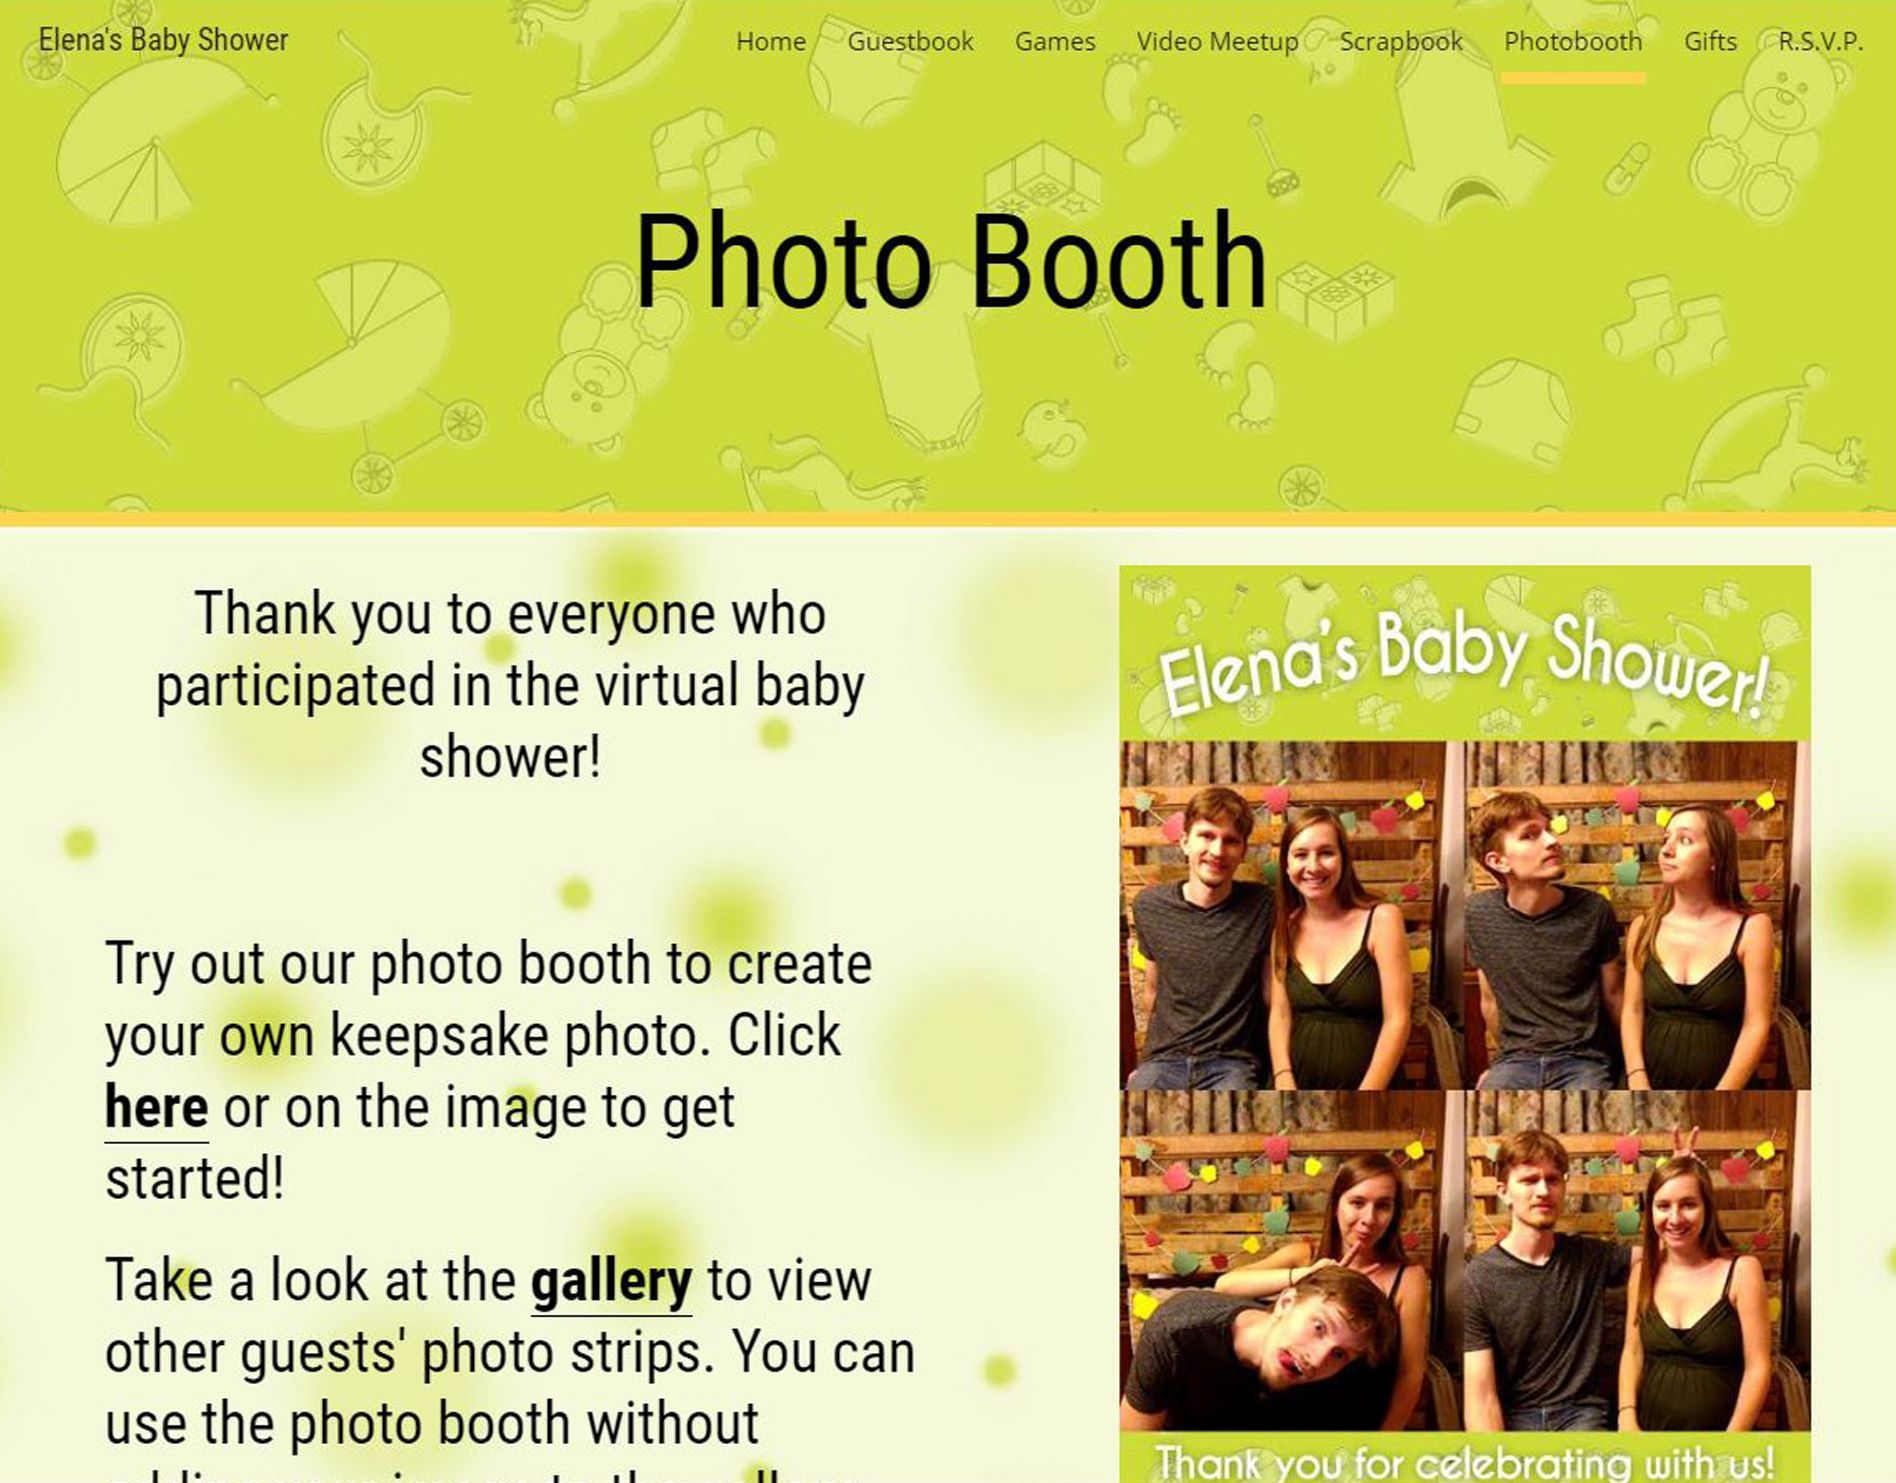 Host A Virtual Baby Shower With Your Own Personalized Event Website